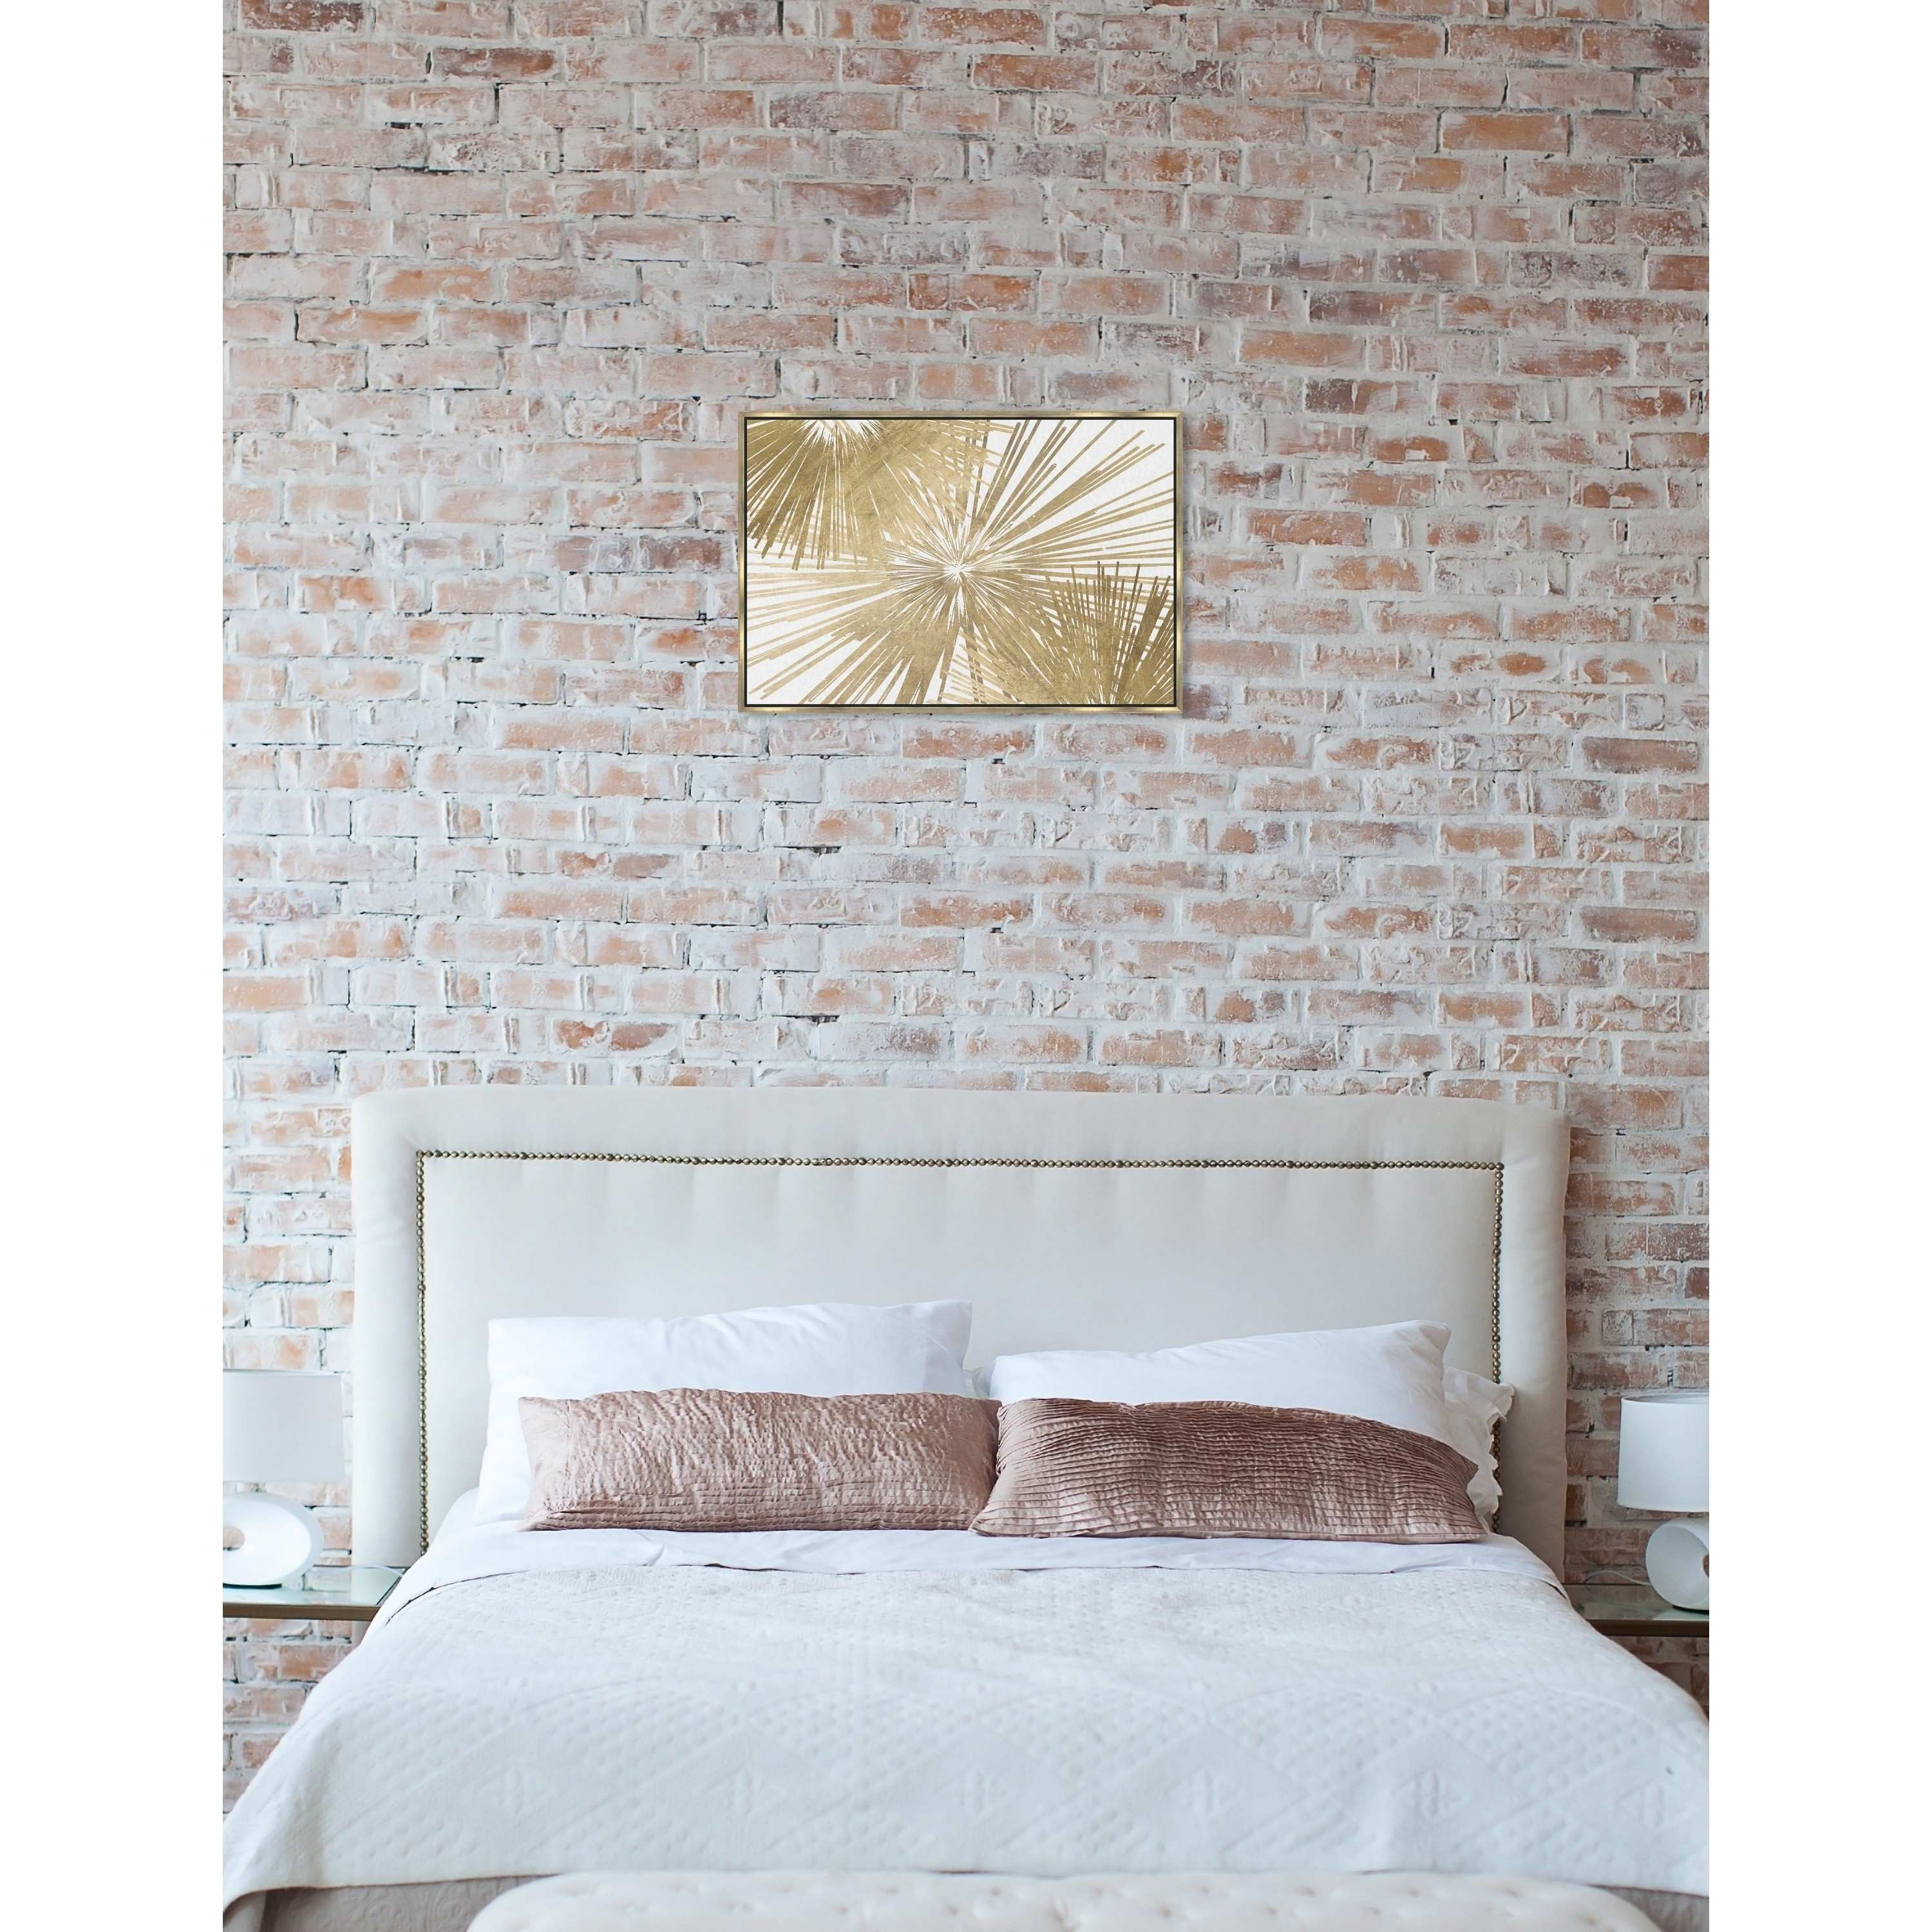 Shop Modern Oliver Gal Sunburst Glam Luxe Day Gold White Abstract